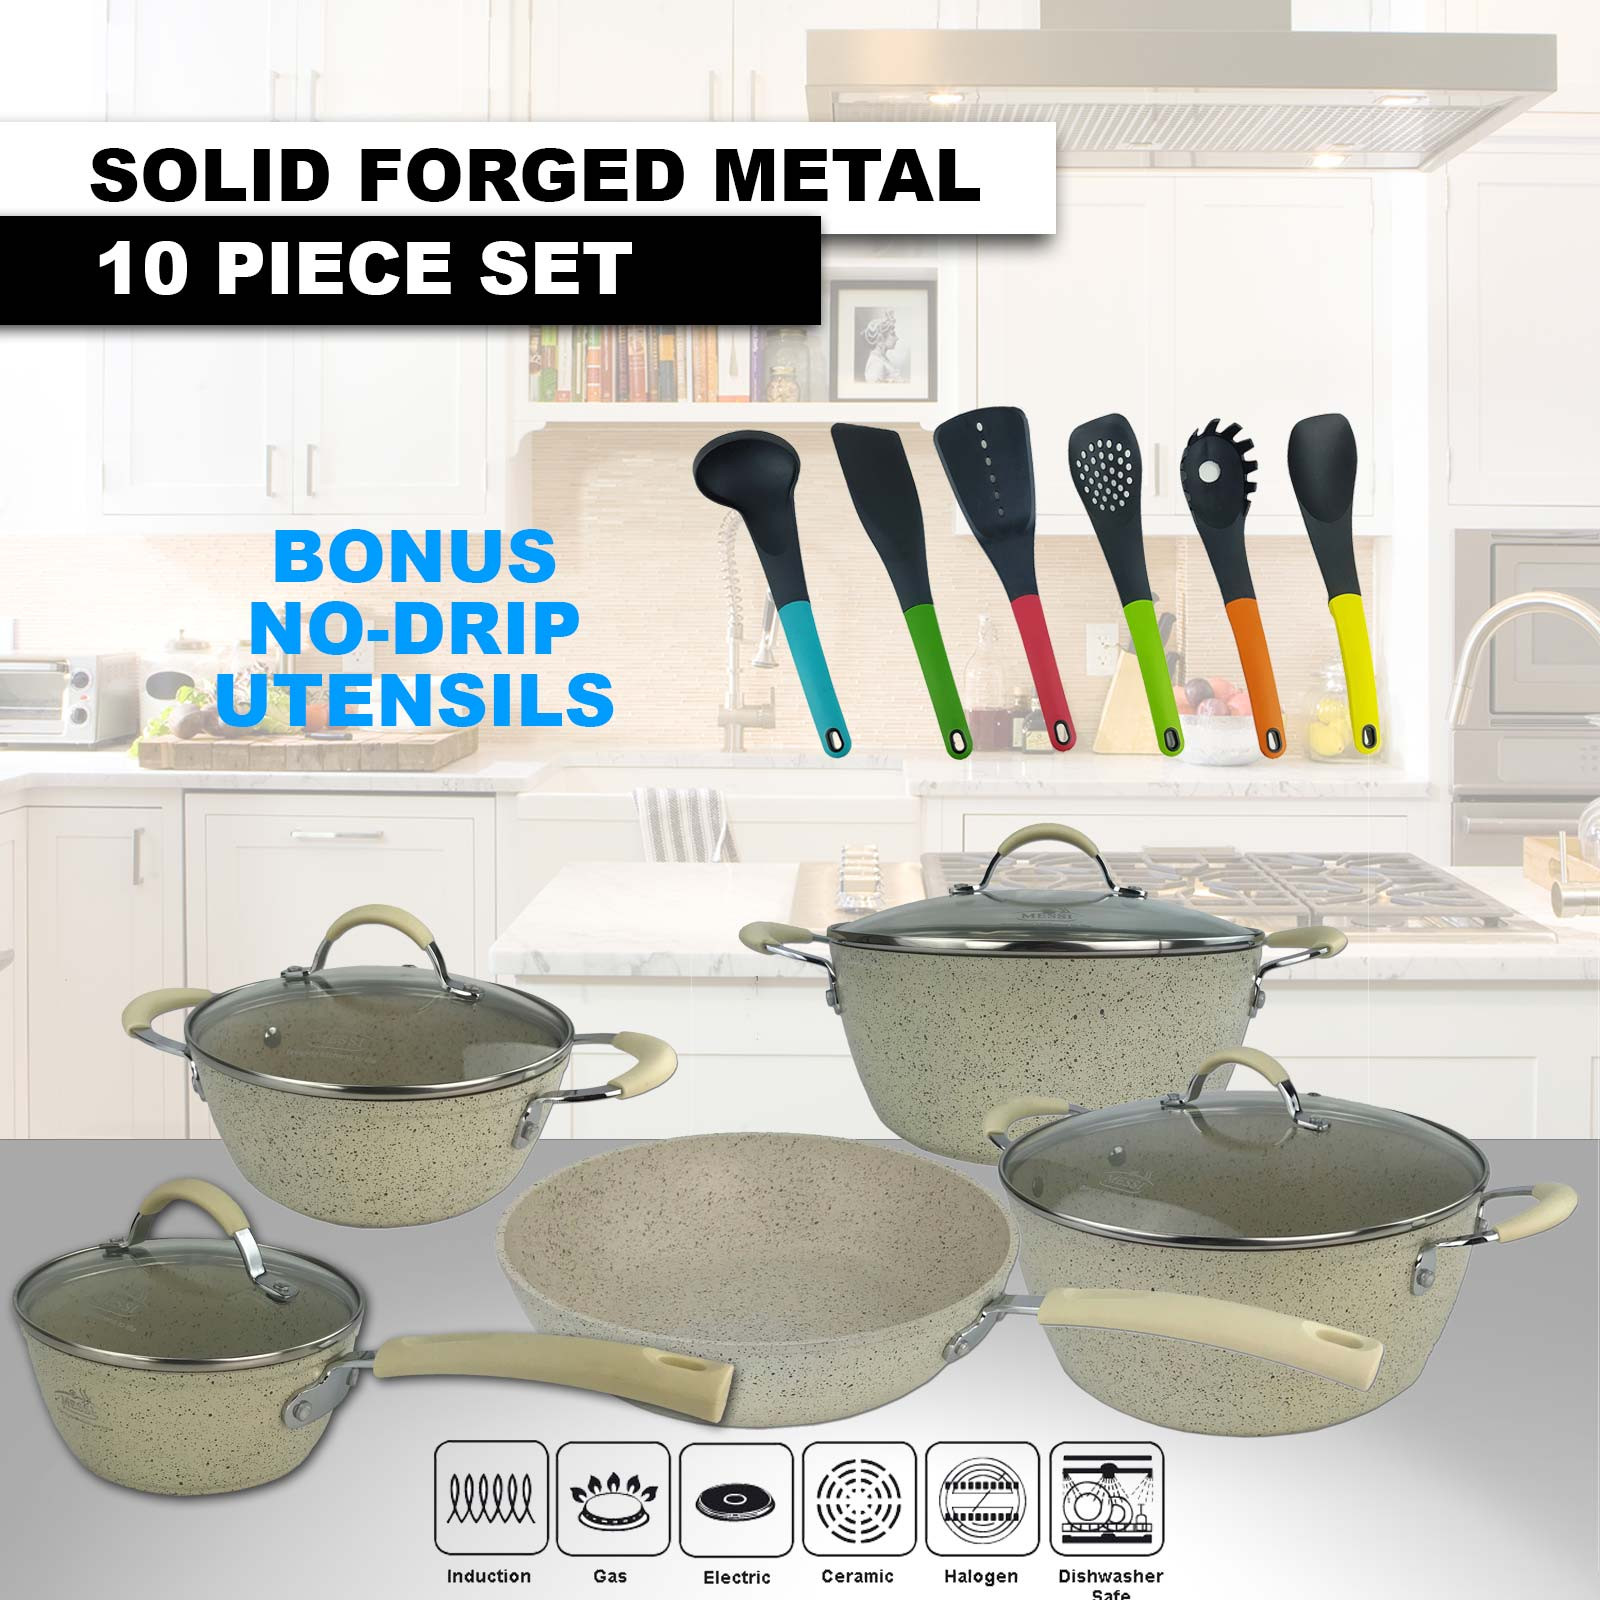 Messi 10 Piece Forged Metal Cookware Set Beige